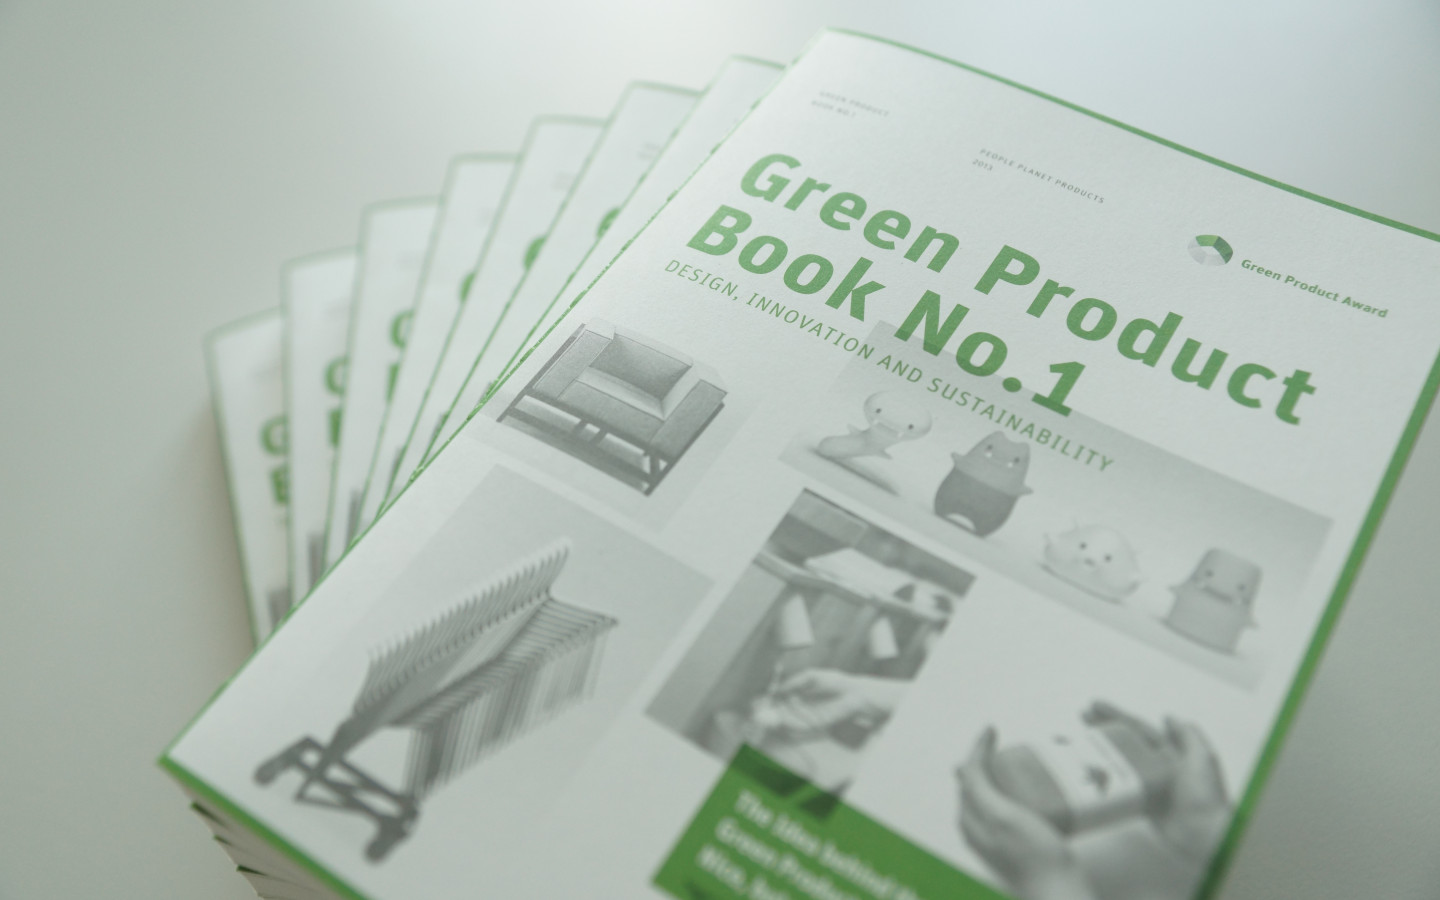 Green Product Book 2013/14